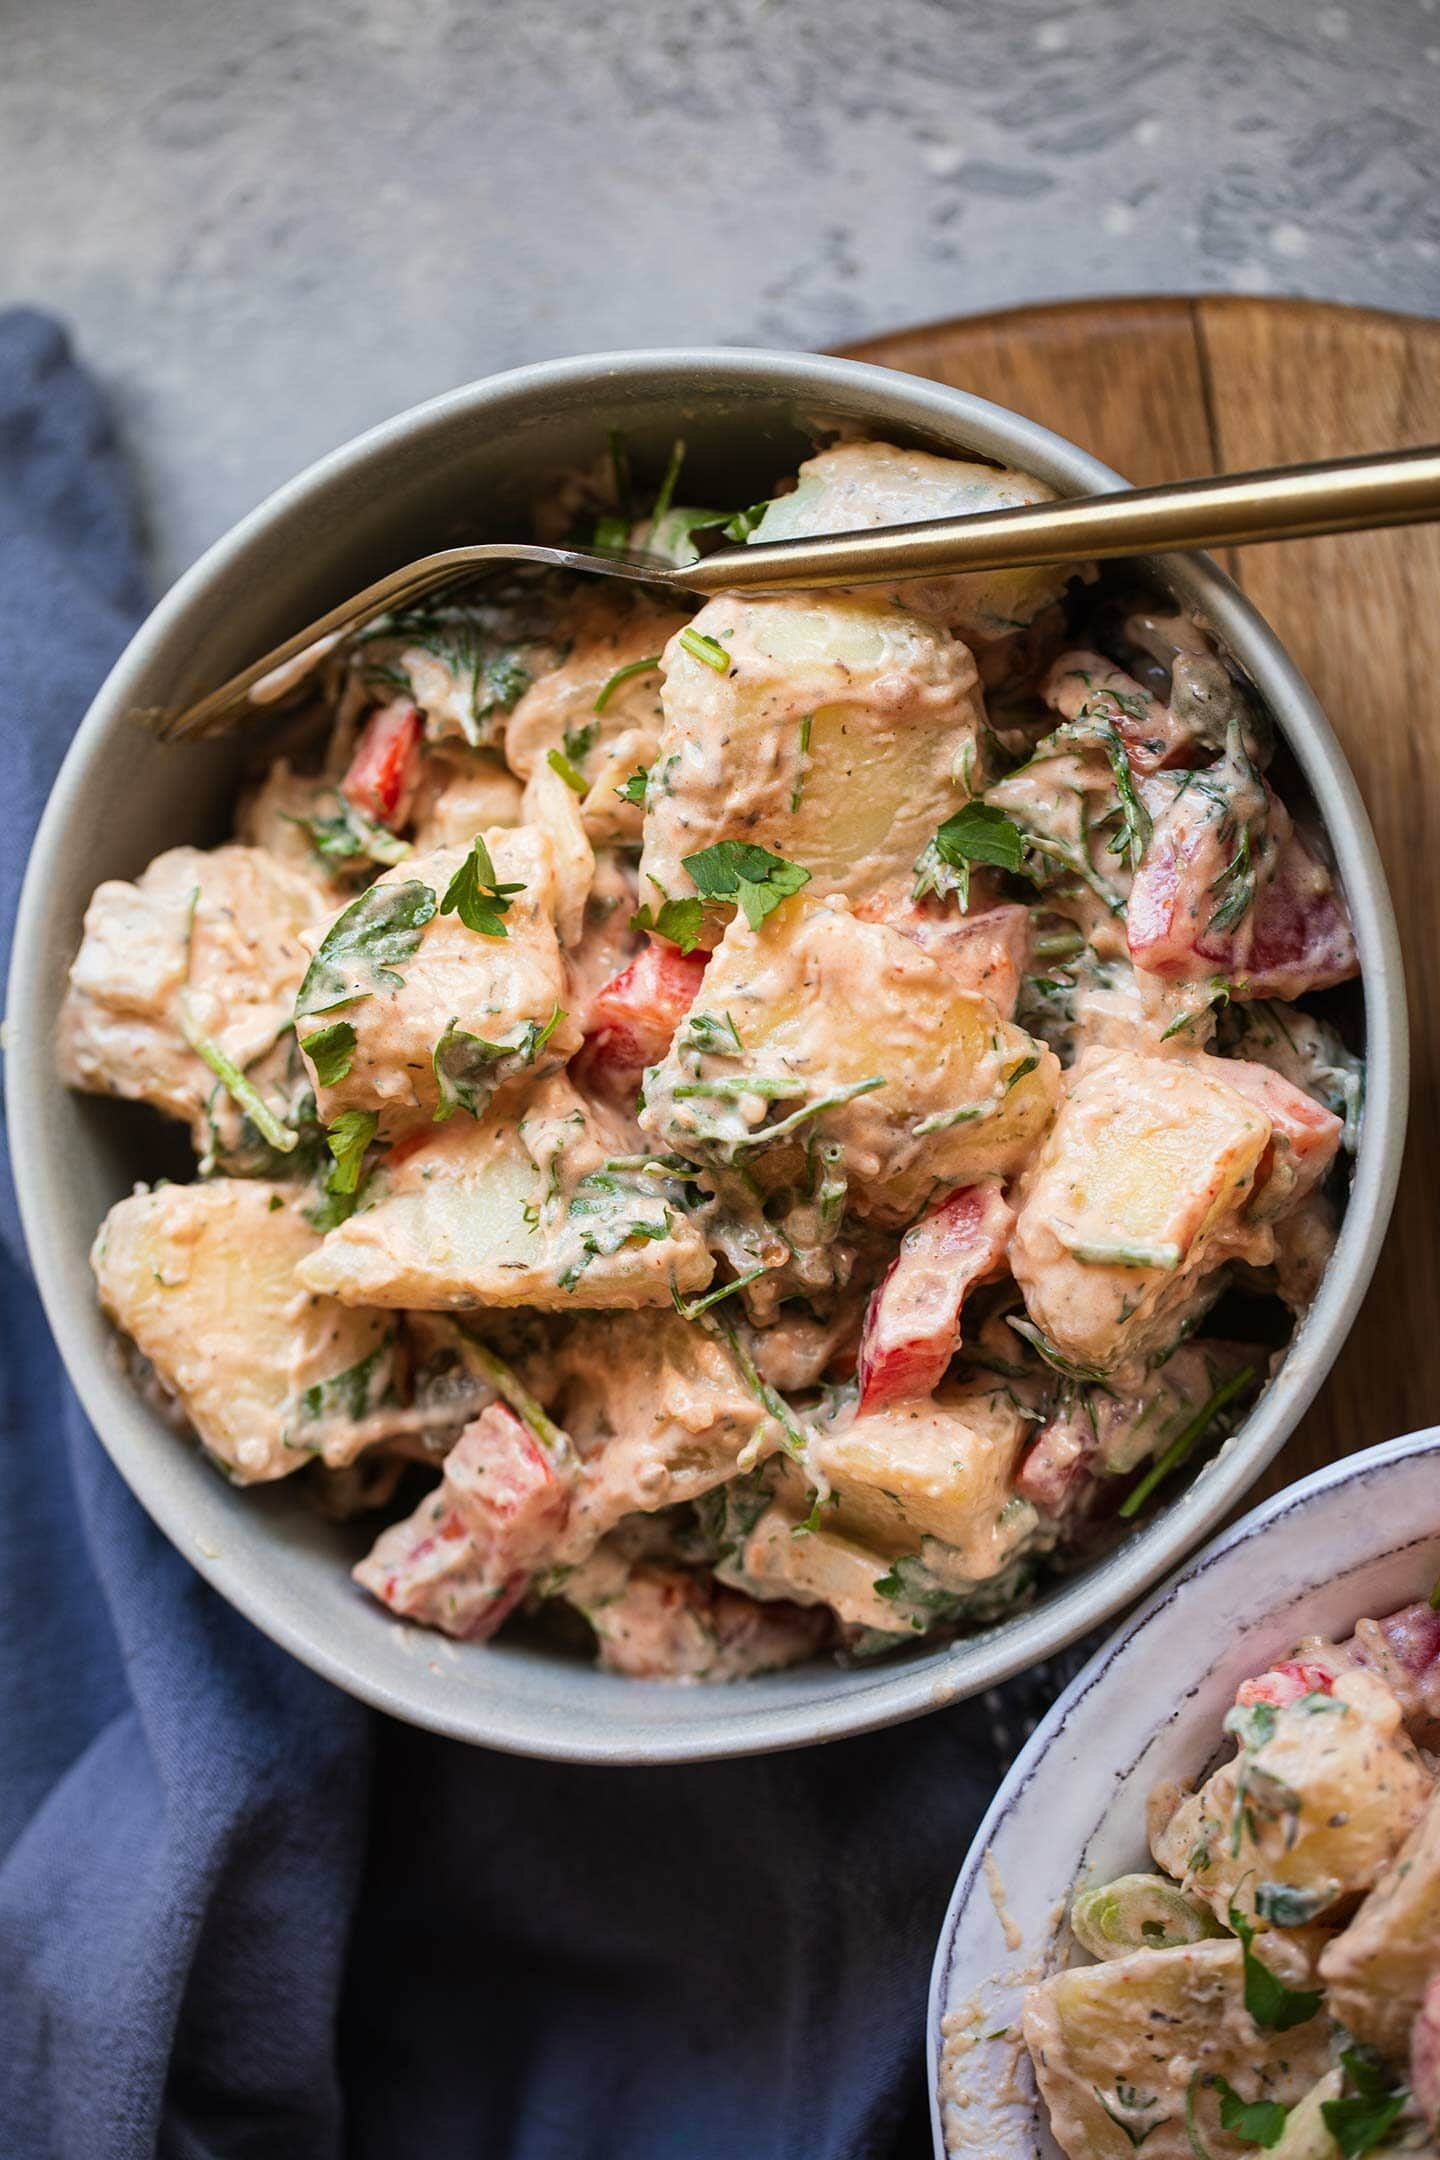 Bowl of potato salad with vegetables and herbs